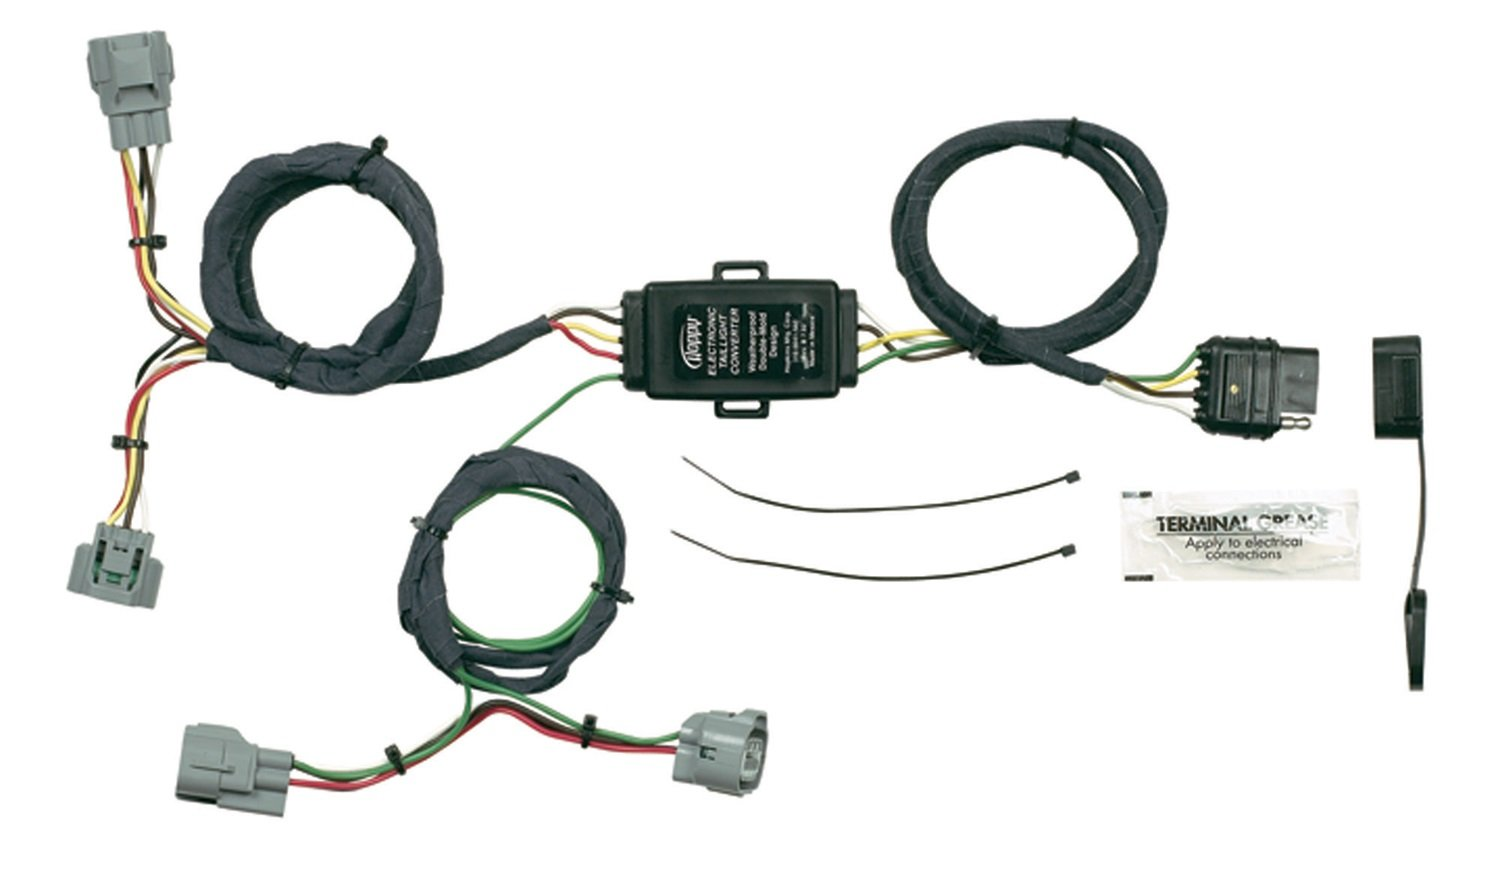 61J3Pn4wzzL._SL1500_ amazon com hopkins 43355 plug in simple vehicle wiring kit  at fashall.co